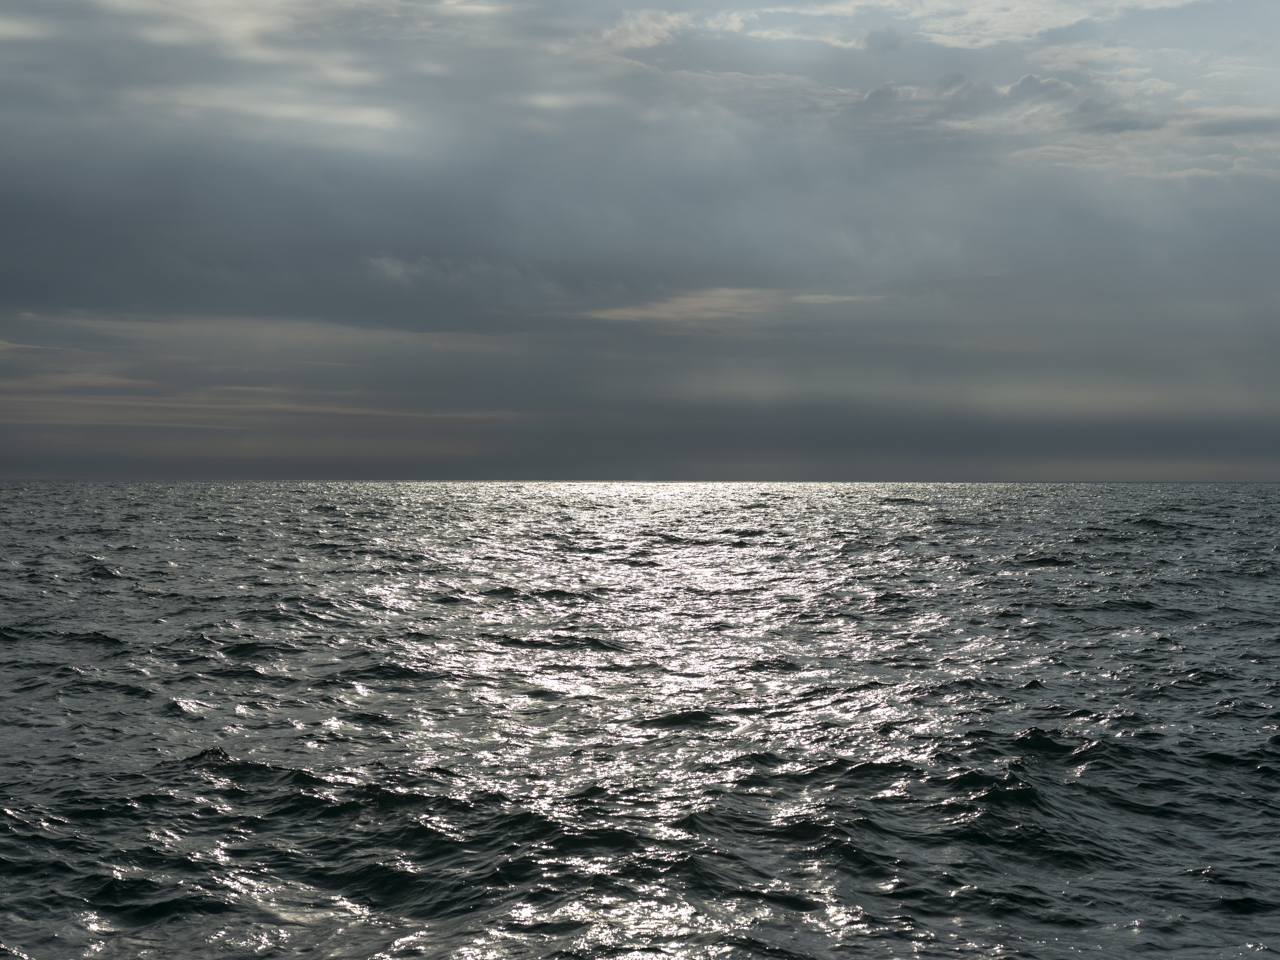 sunlight on a dark Lake Michigan with heavy cloud coverage